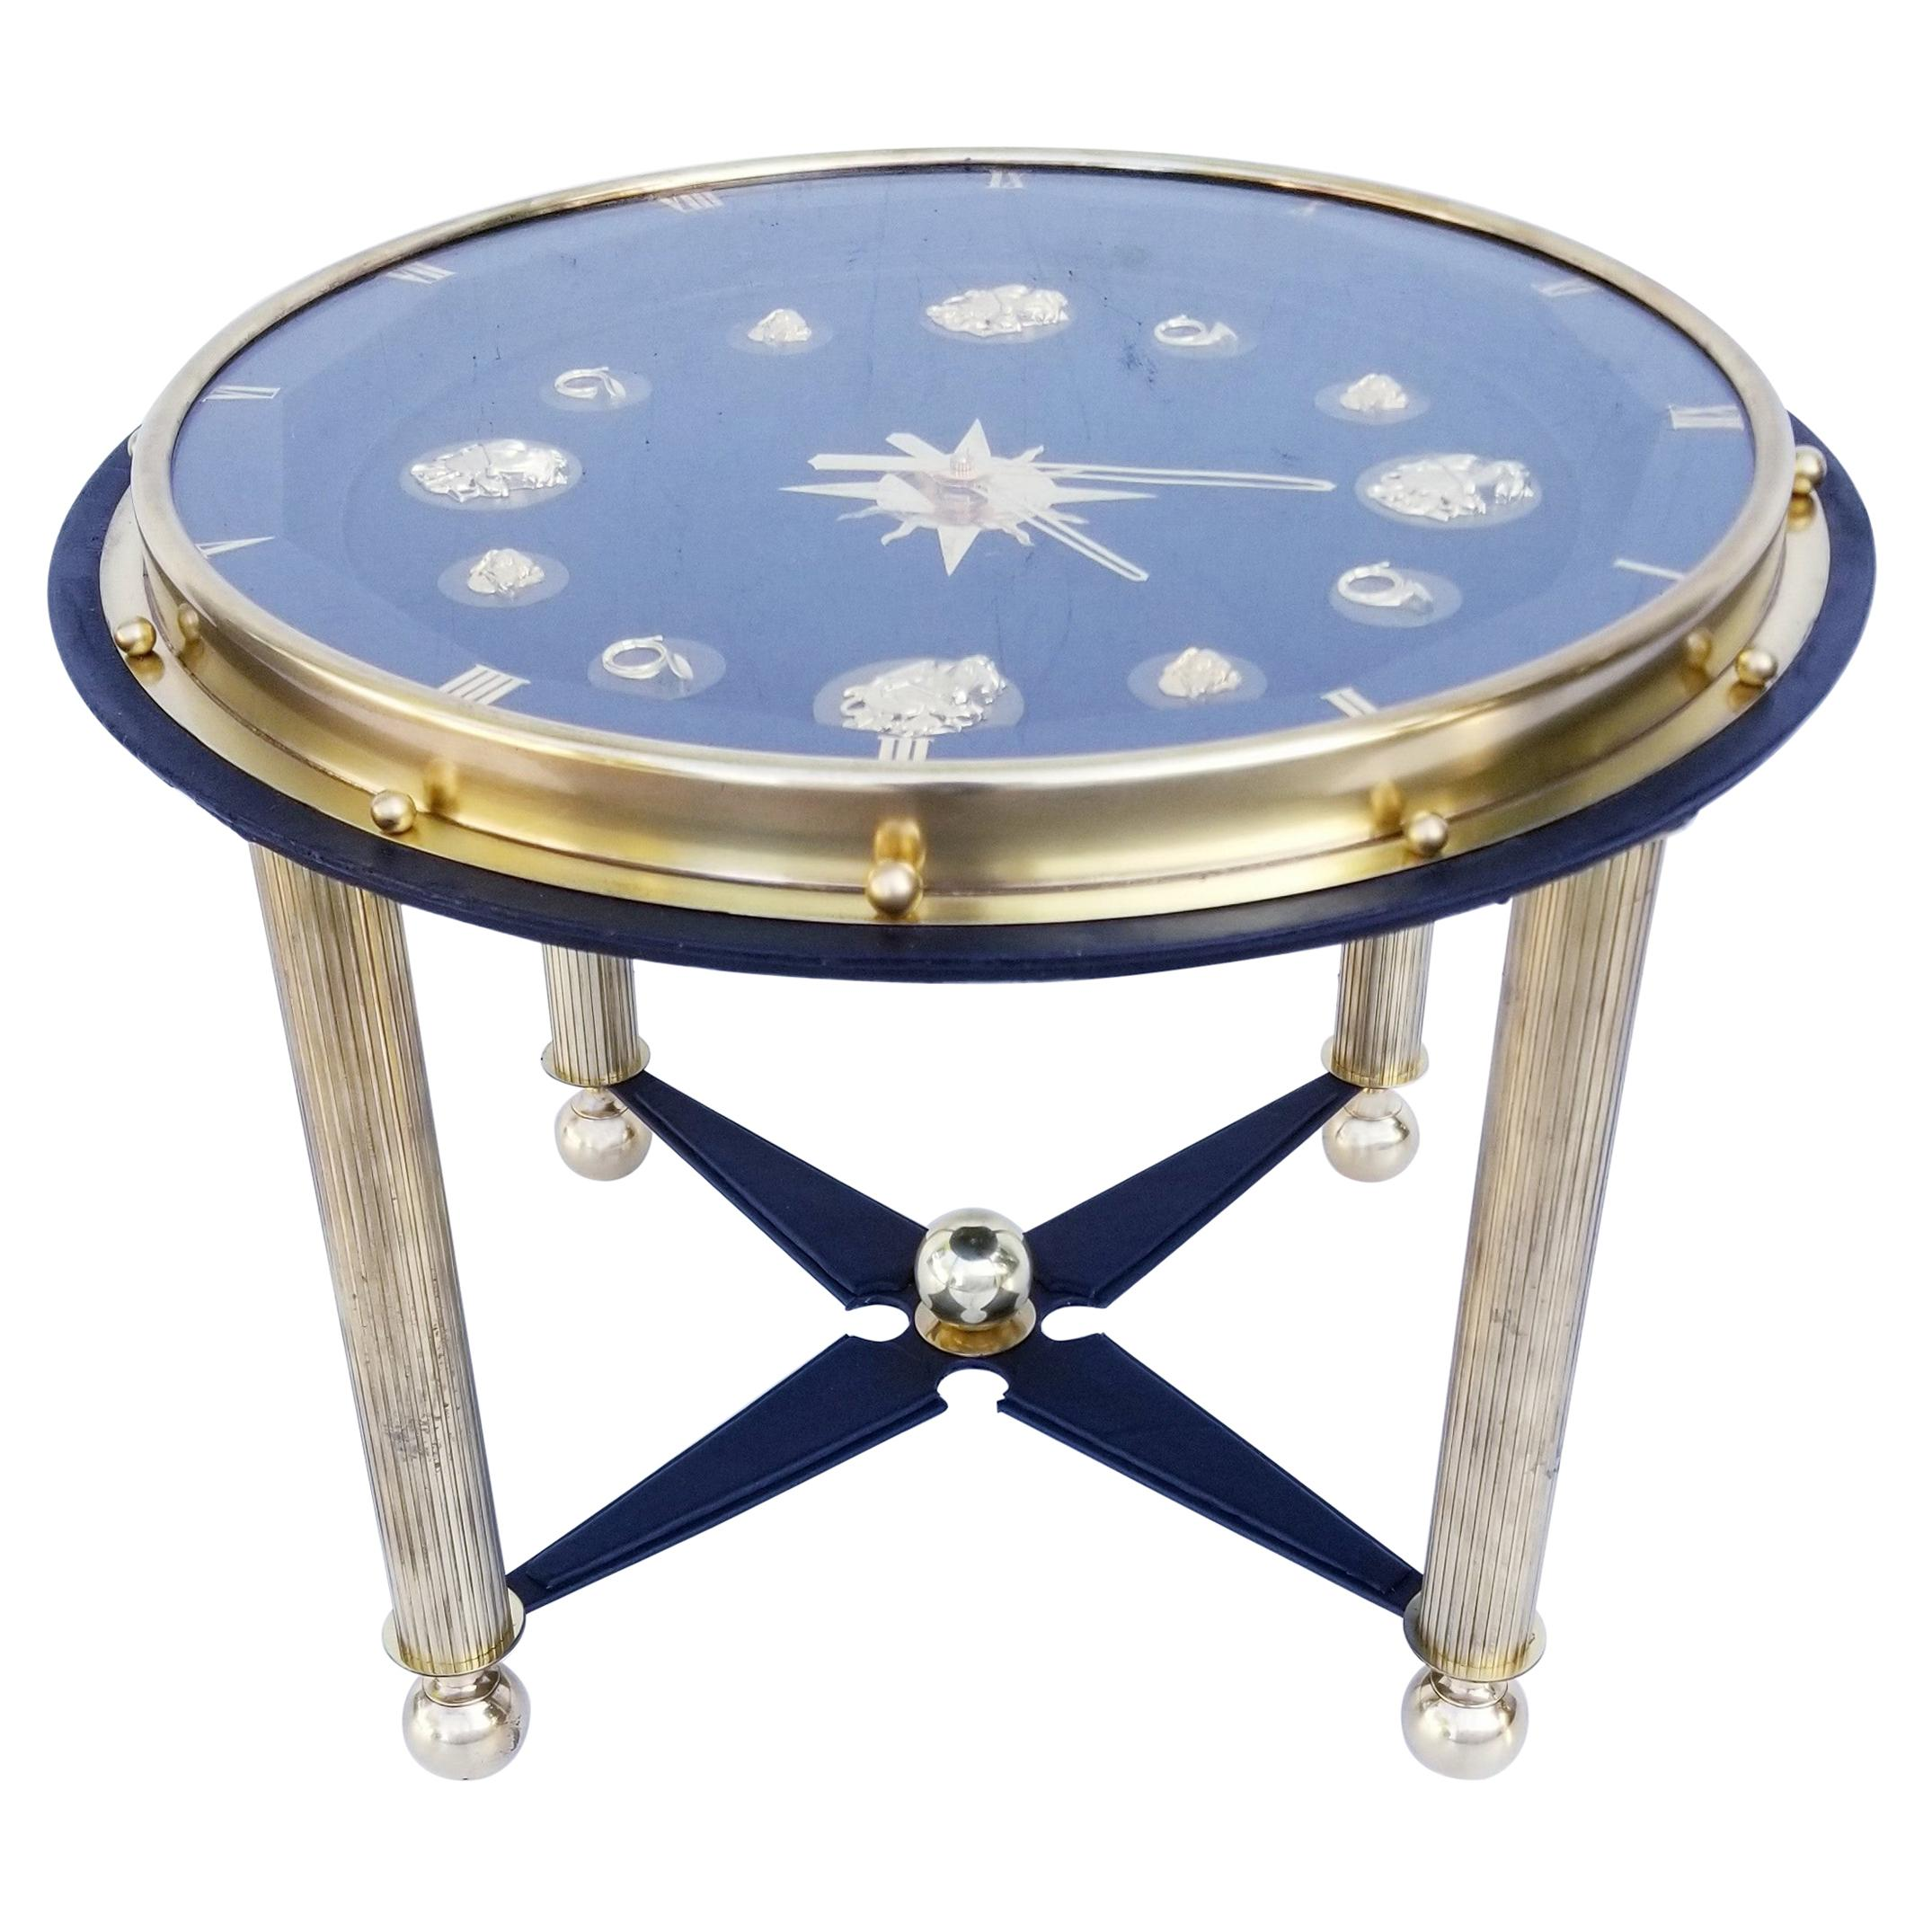 Jacques Adnet Style French Clock Table, circa 1950